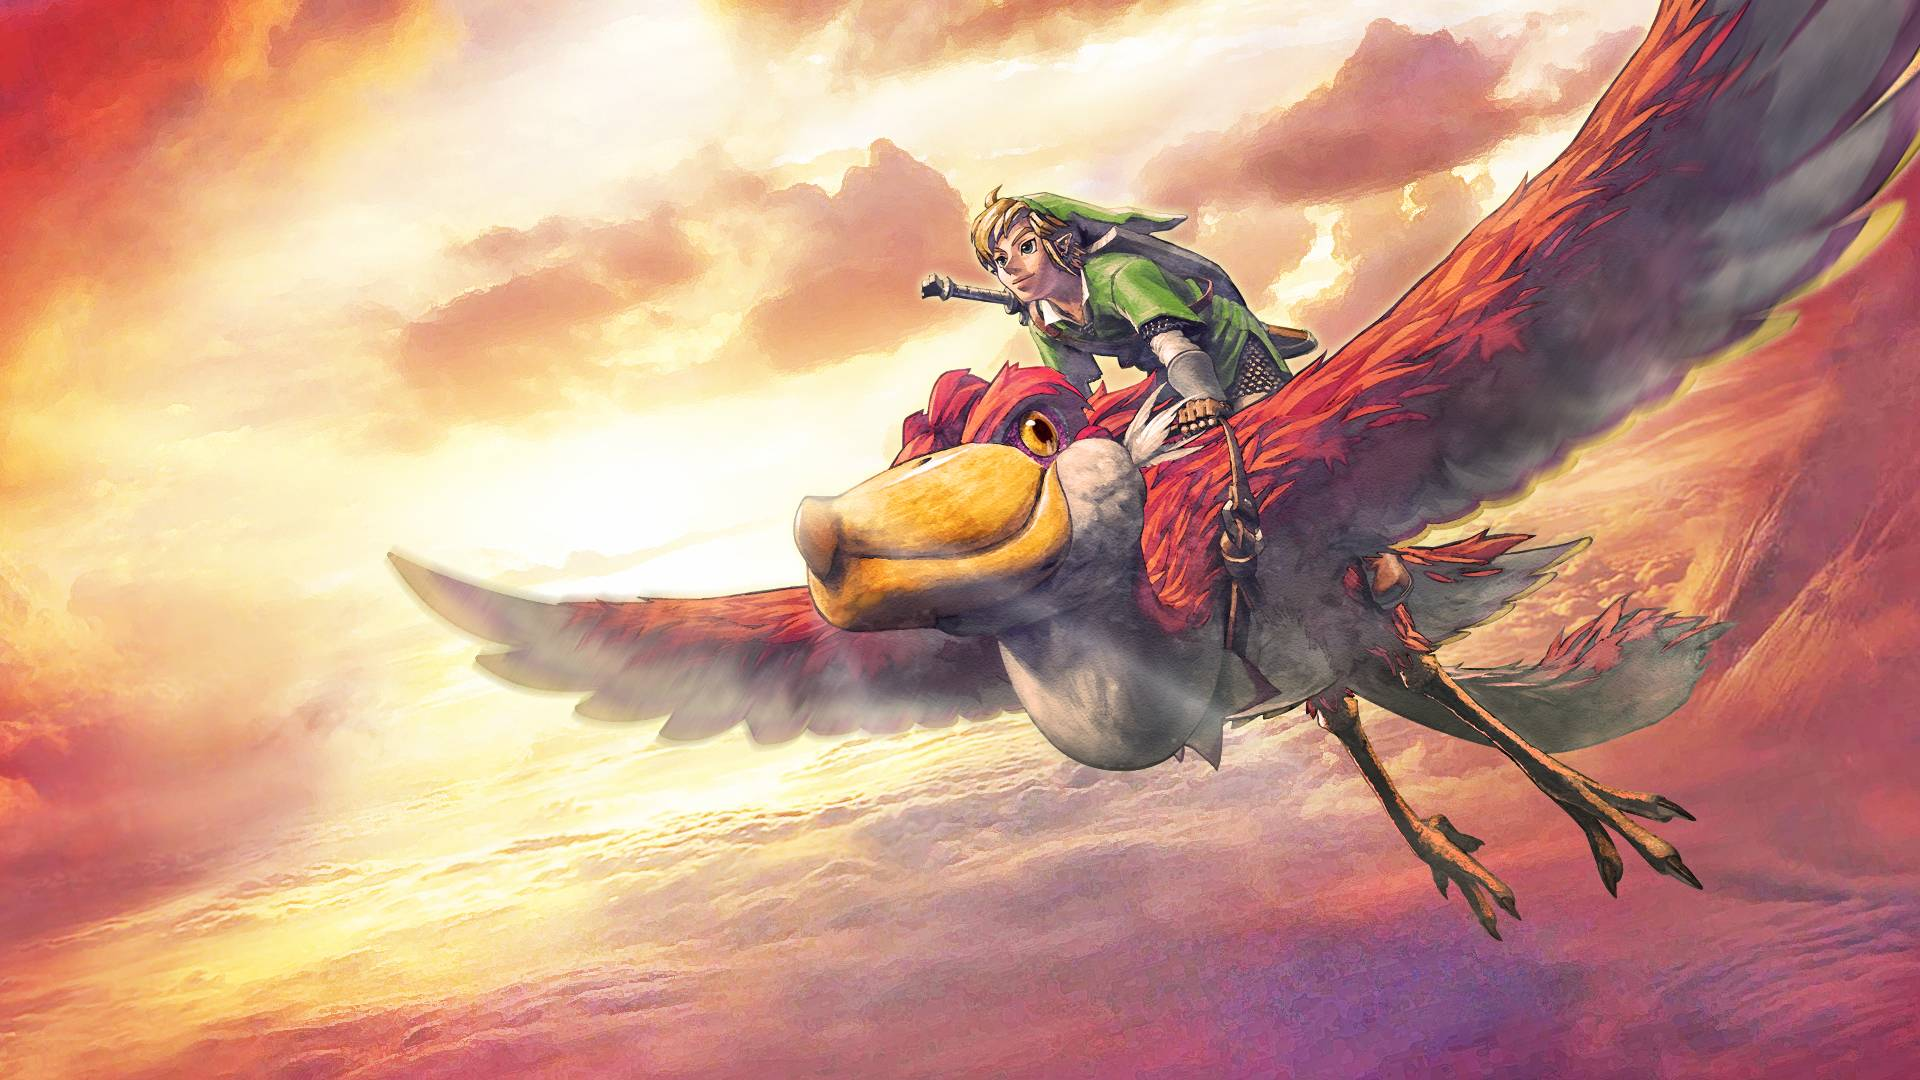 Hd wallpaper zelda - The Legend Of Zelda Hd High Quality Wallpapers Download